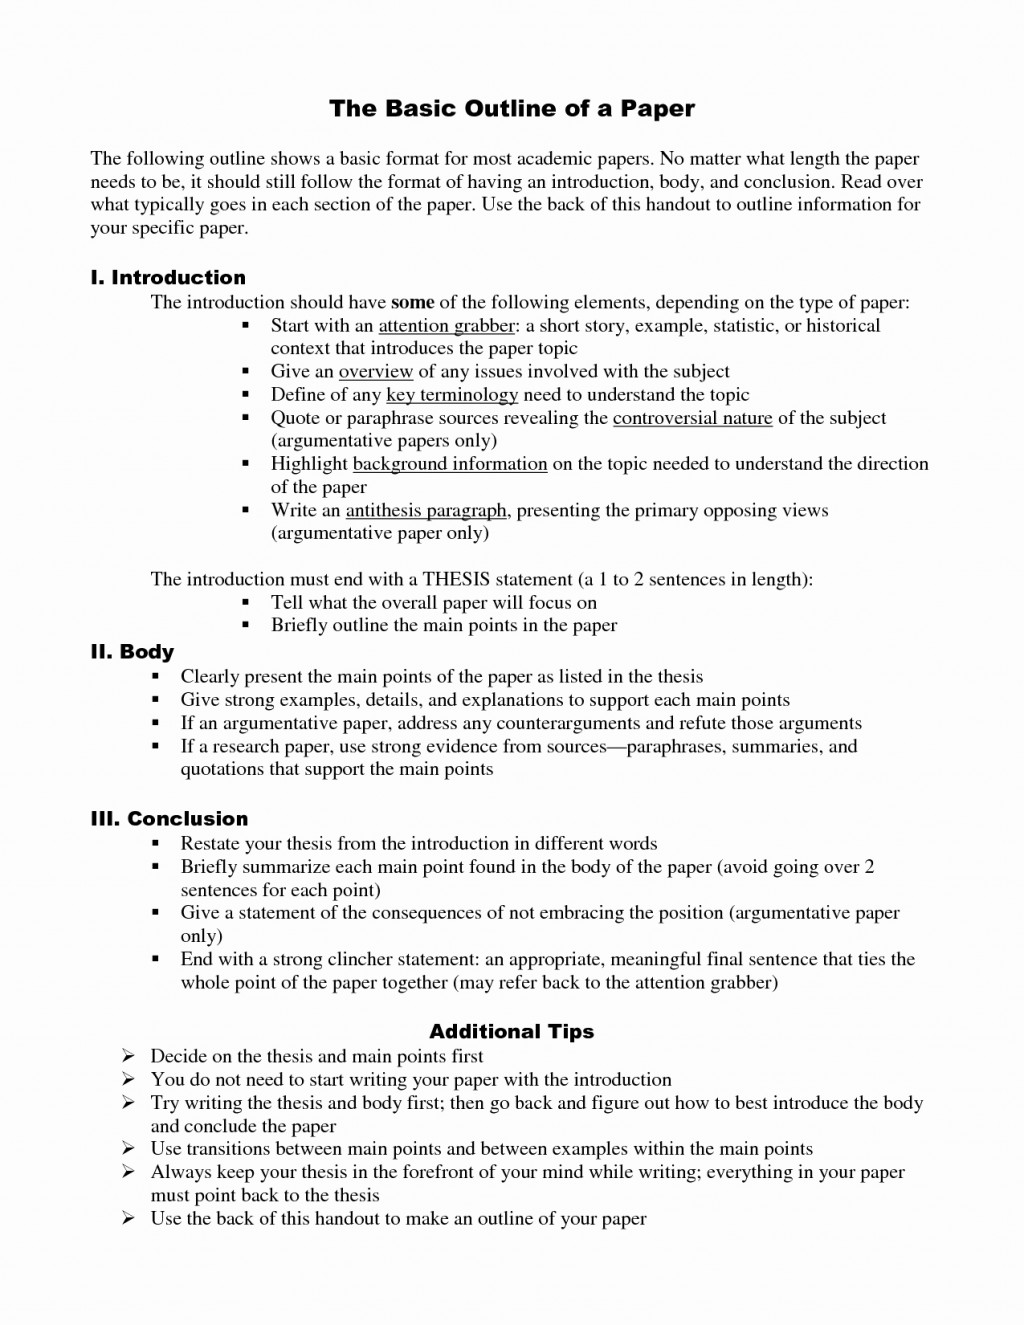 018 Inspirational Essays Character Analysis Essay Template Fresh The Yellow Wallpaper English Of Breathtaking In Hindi About Life And Struggles Fathers Large